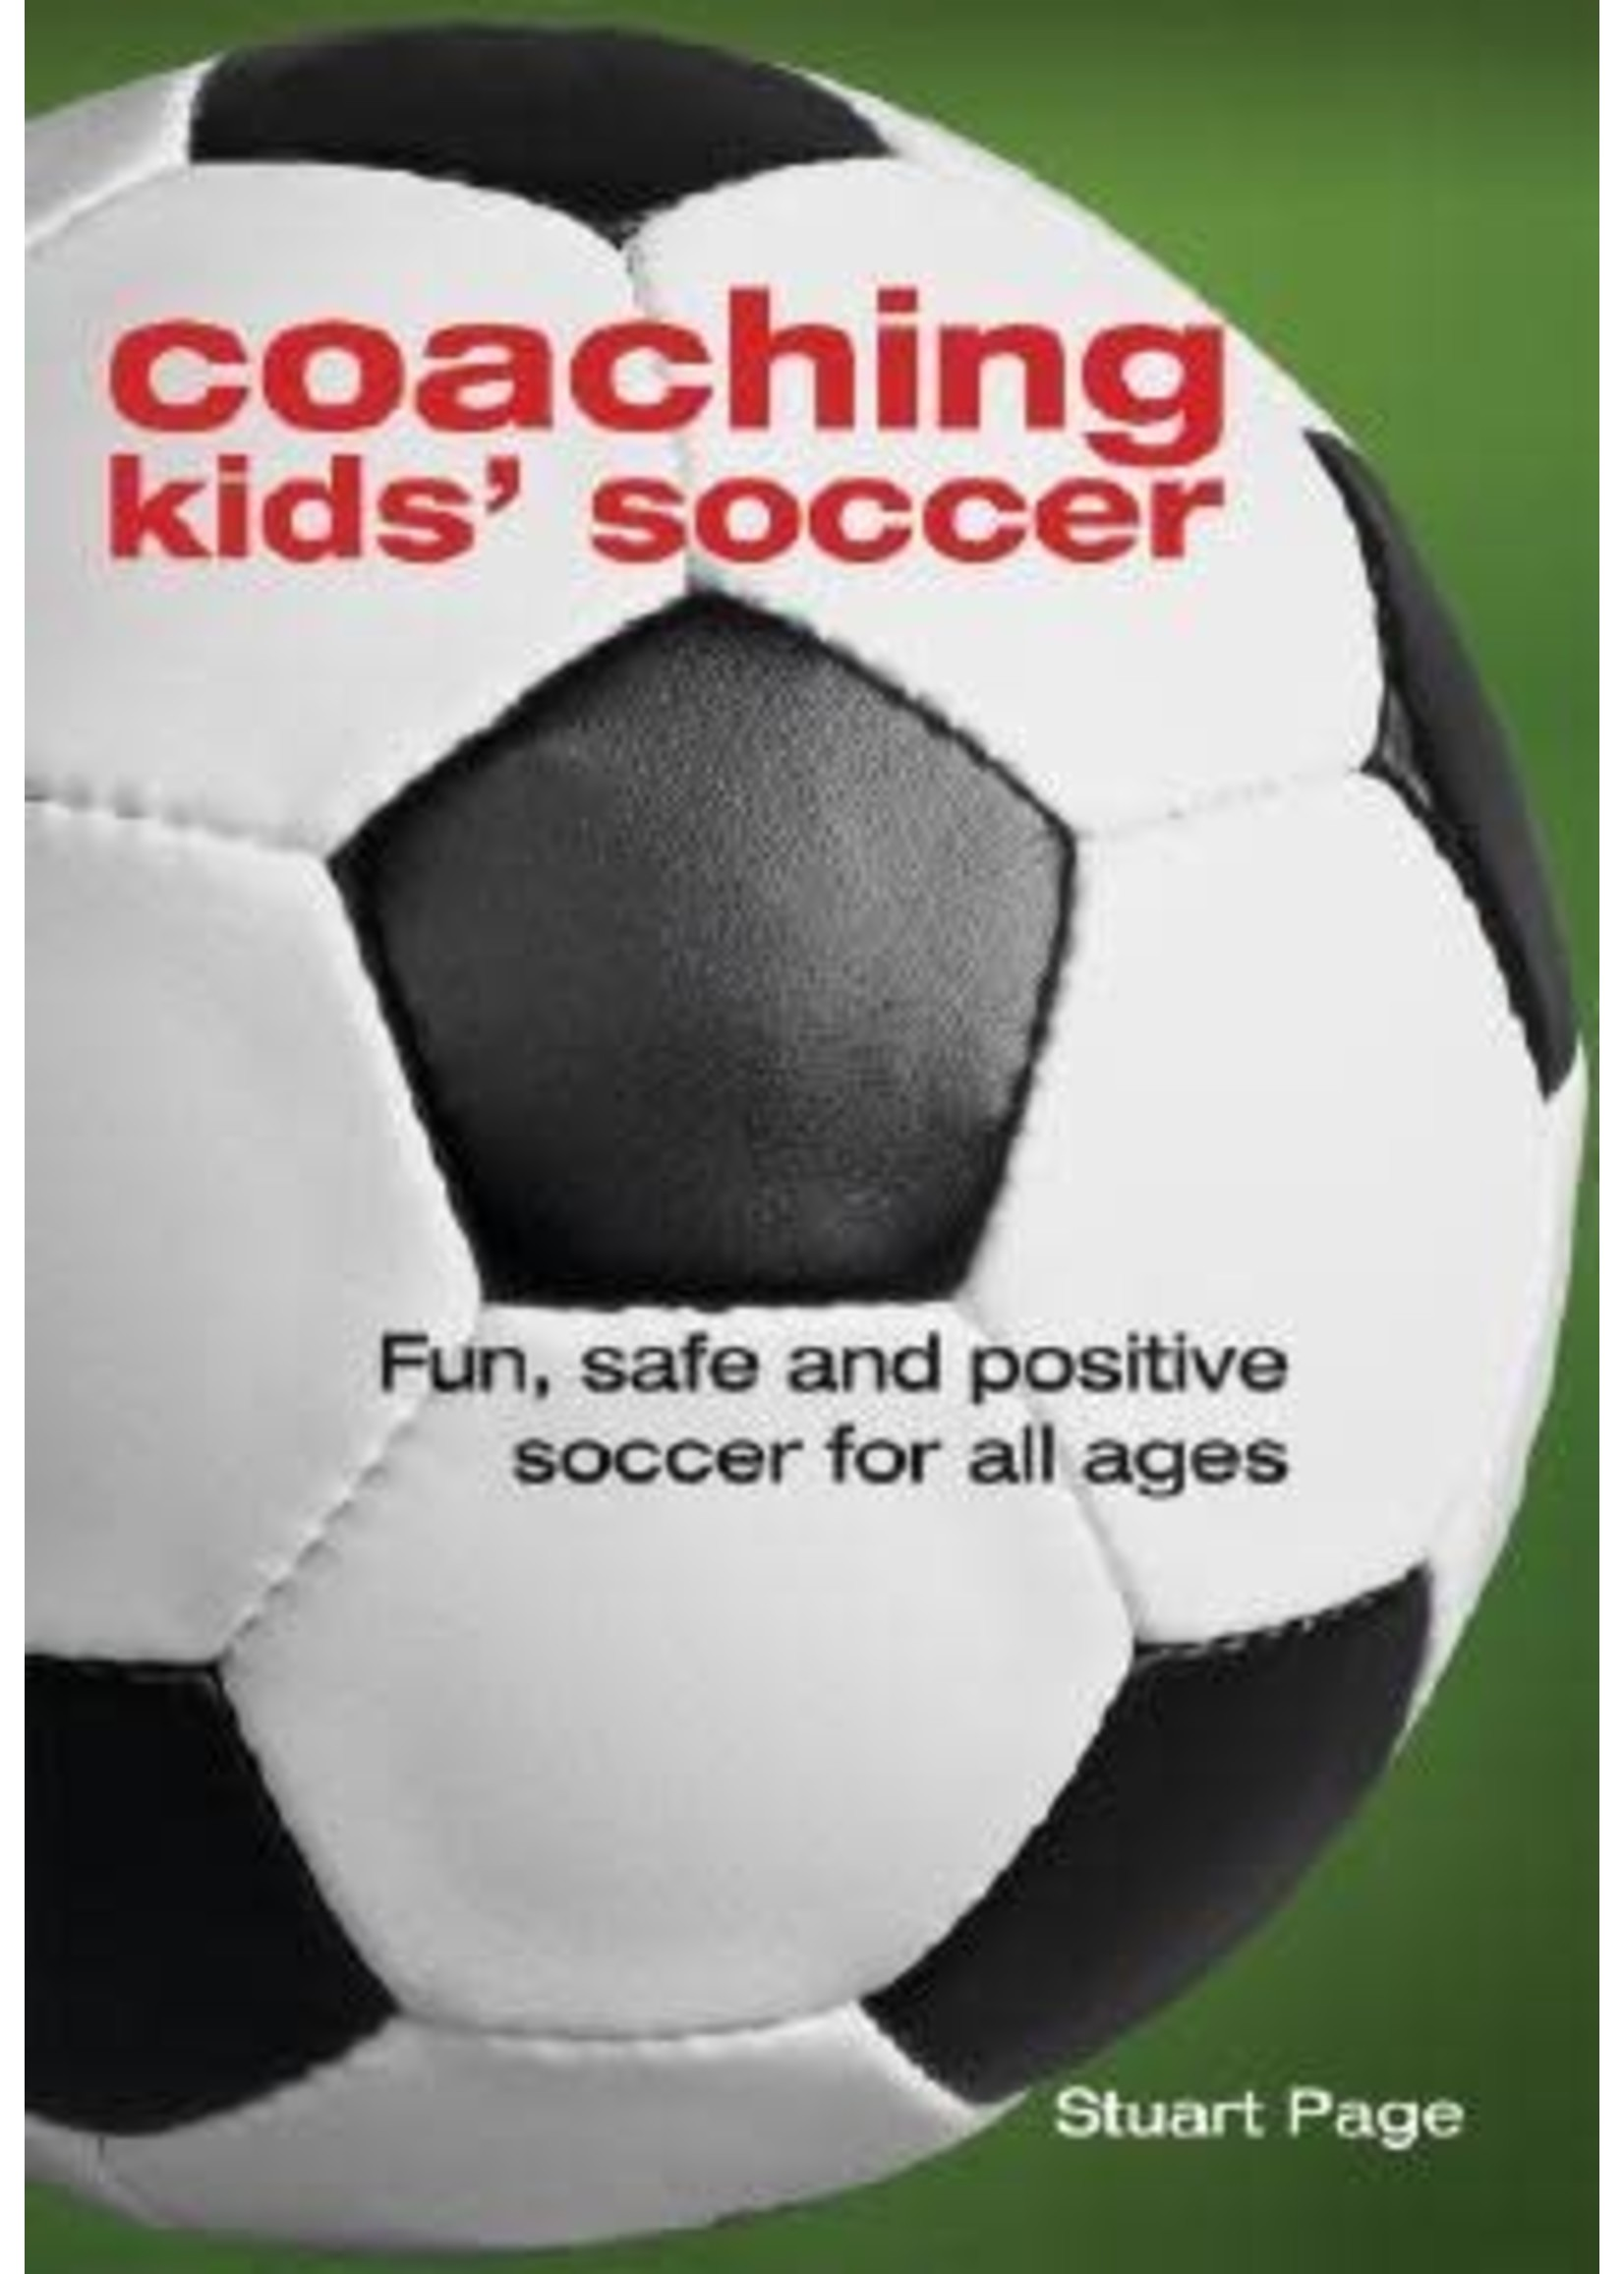 Coaching Kid's Soccer - Fun, Safe And Positive Soccer For All Ages